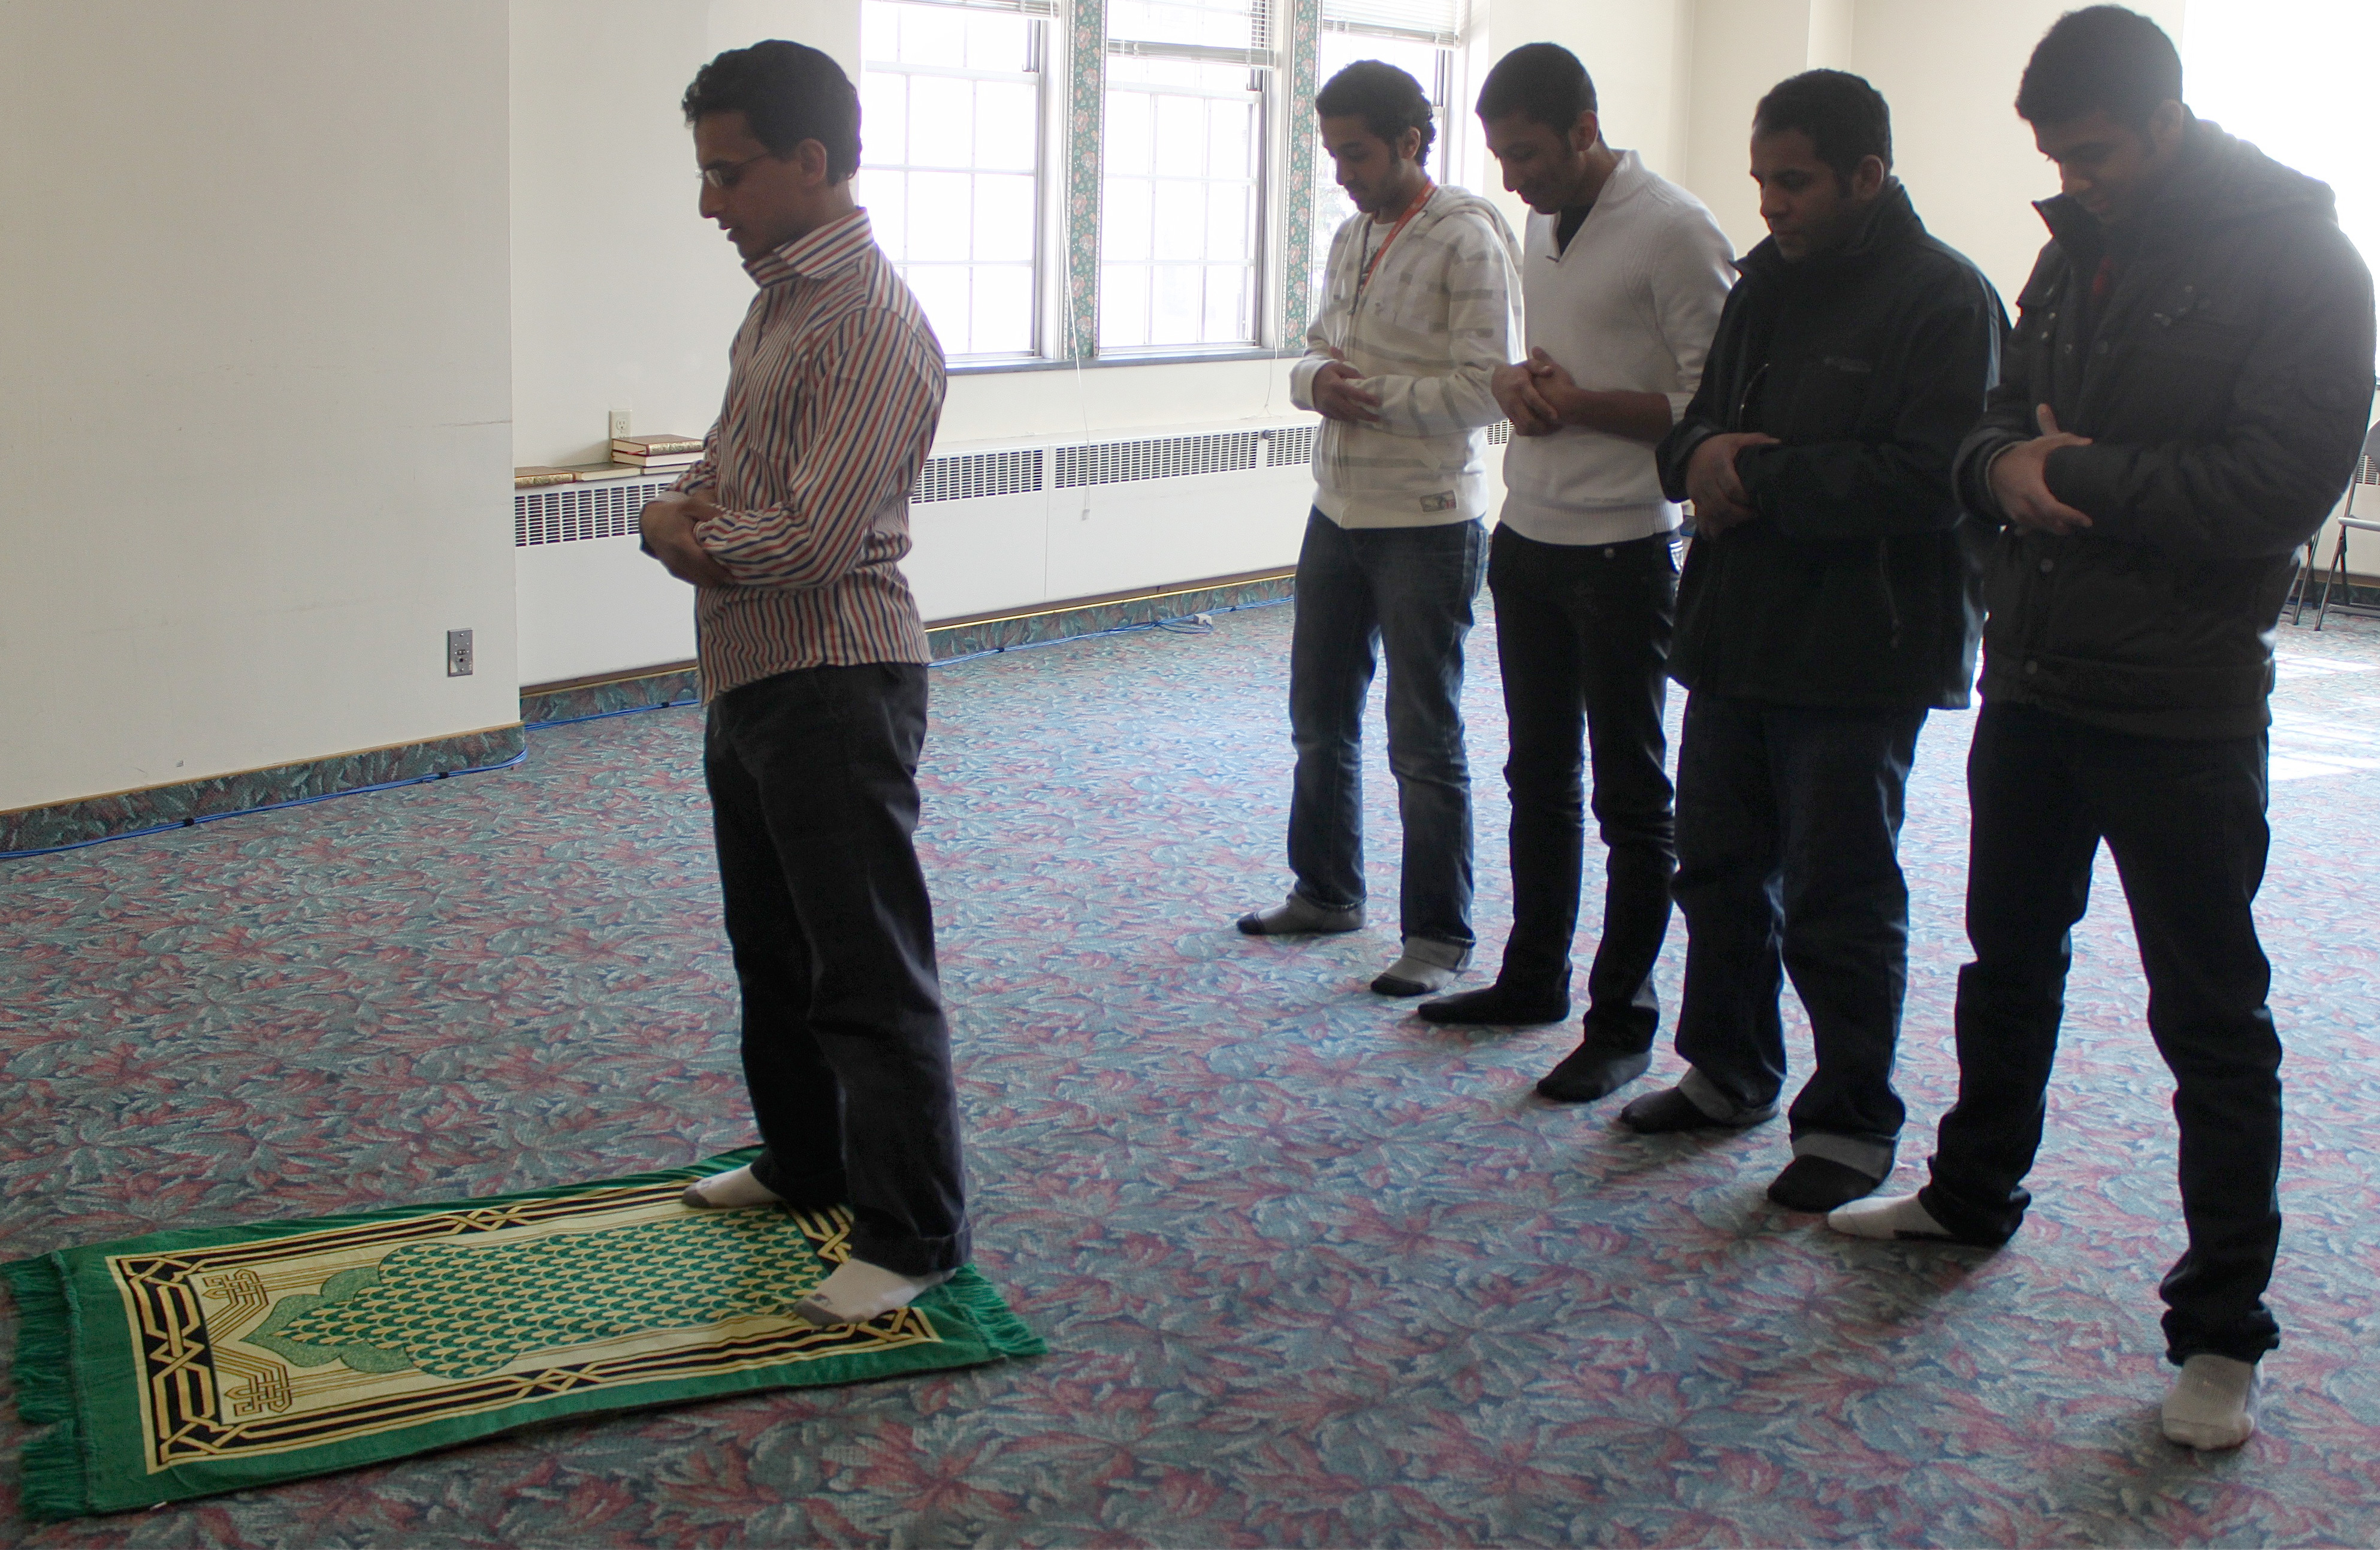 Some Muslim youth offer prayer in congregation.